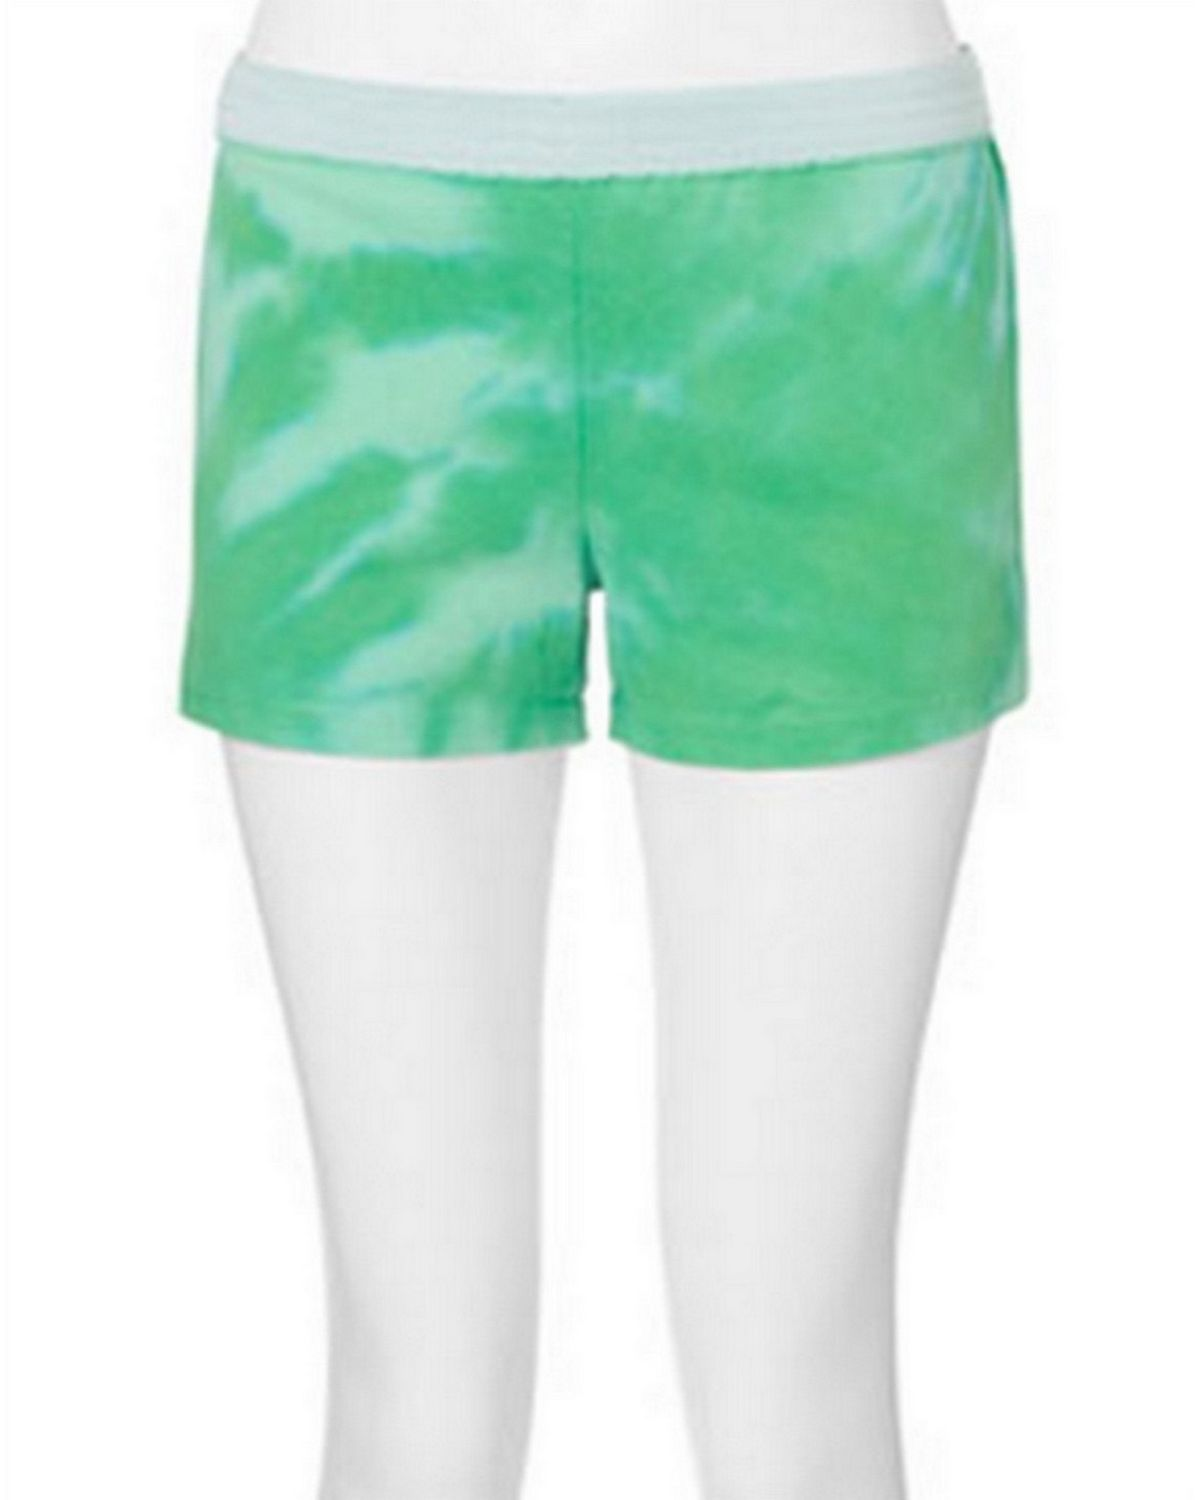 Soffe HSM037 Adult Athletic Cheer Short - Kelly - XL HSM037